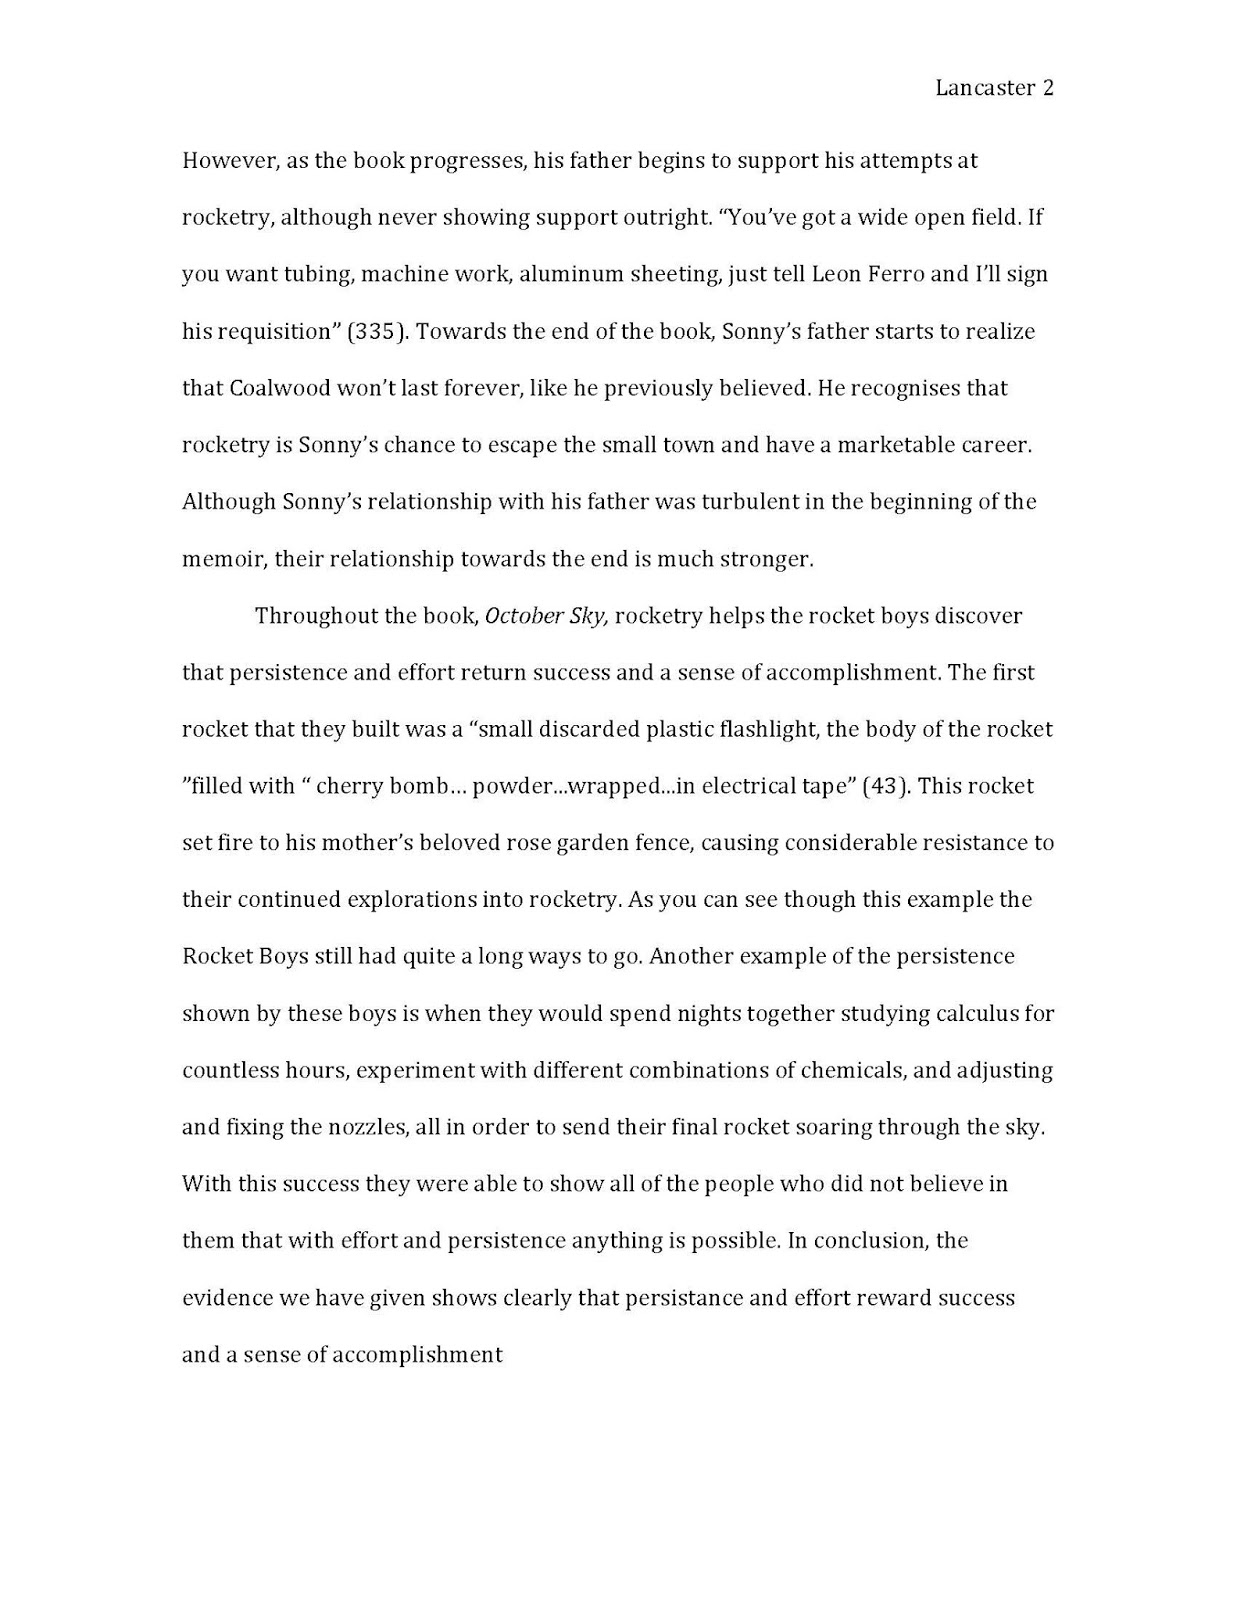 hammer time honors  period 1 class essay